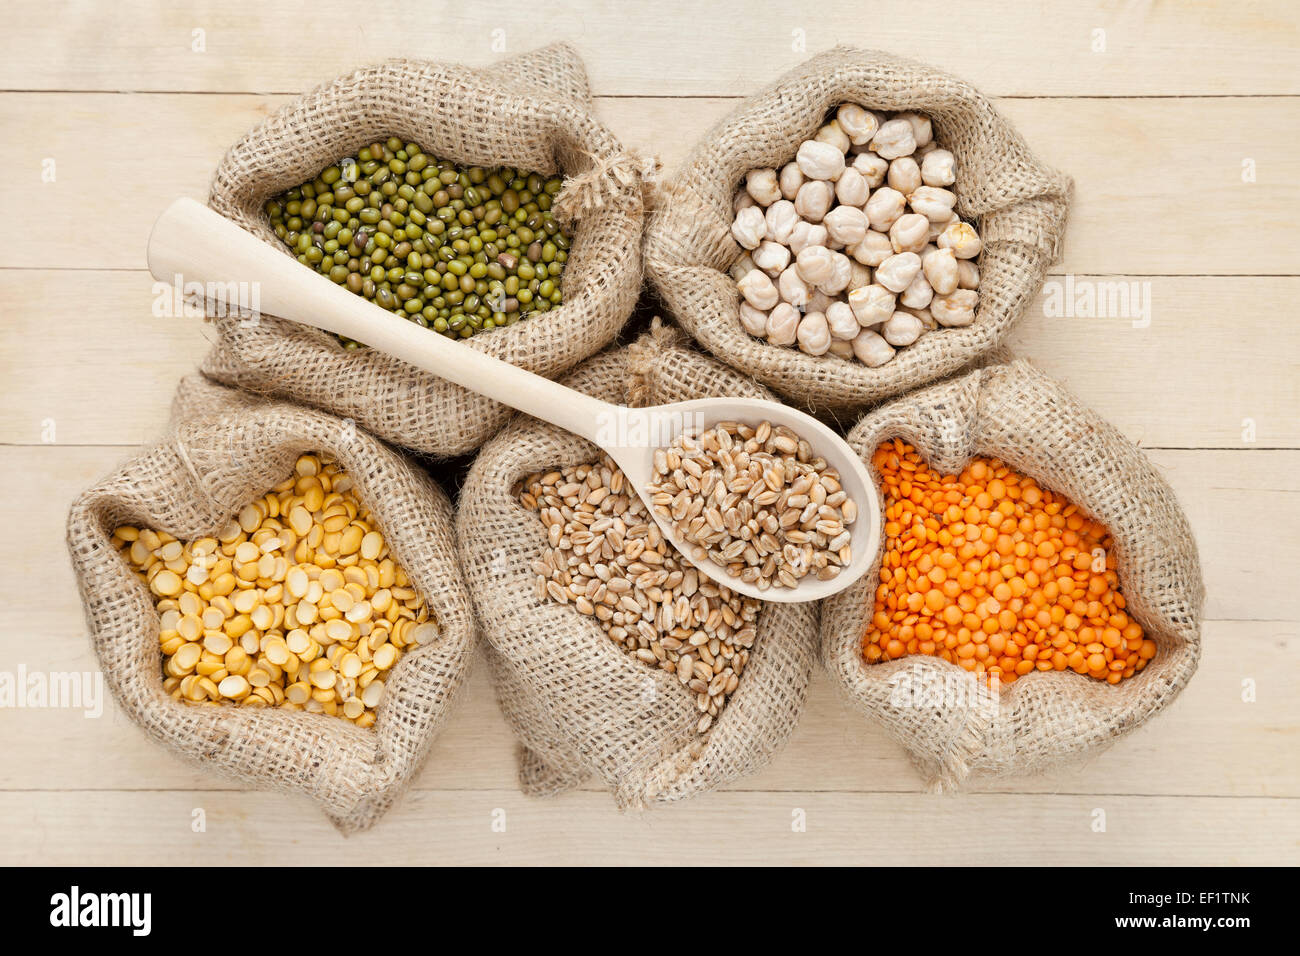 hessian bags with red lentils, peas, chick peas, wheat and green mung on wooden table - Stock Image